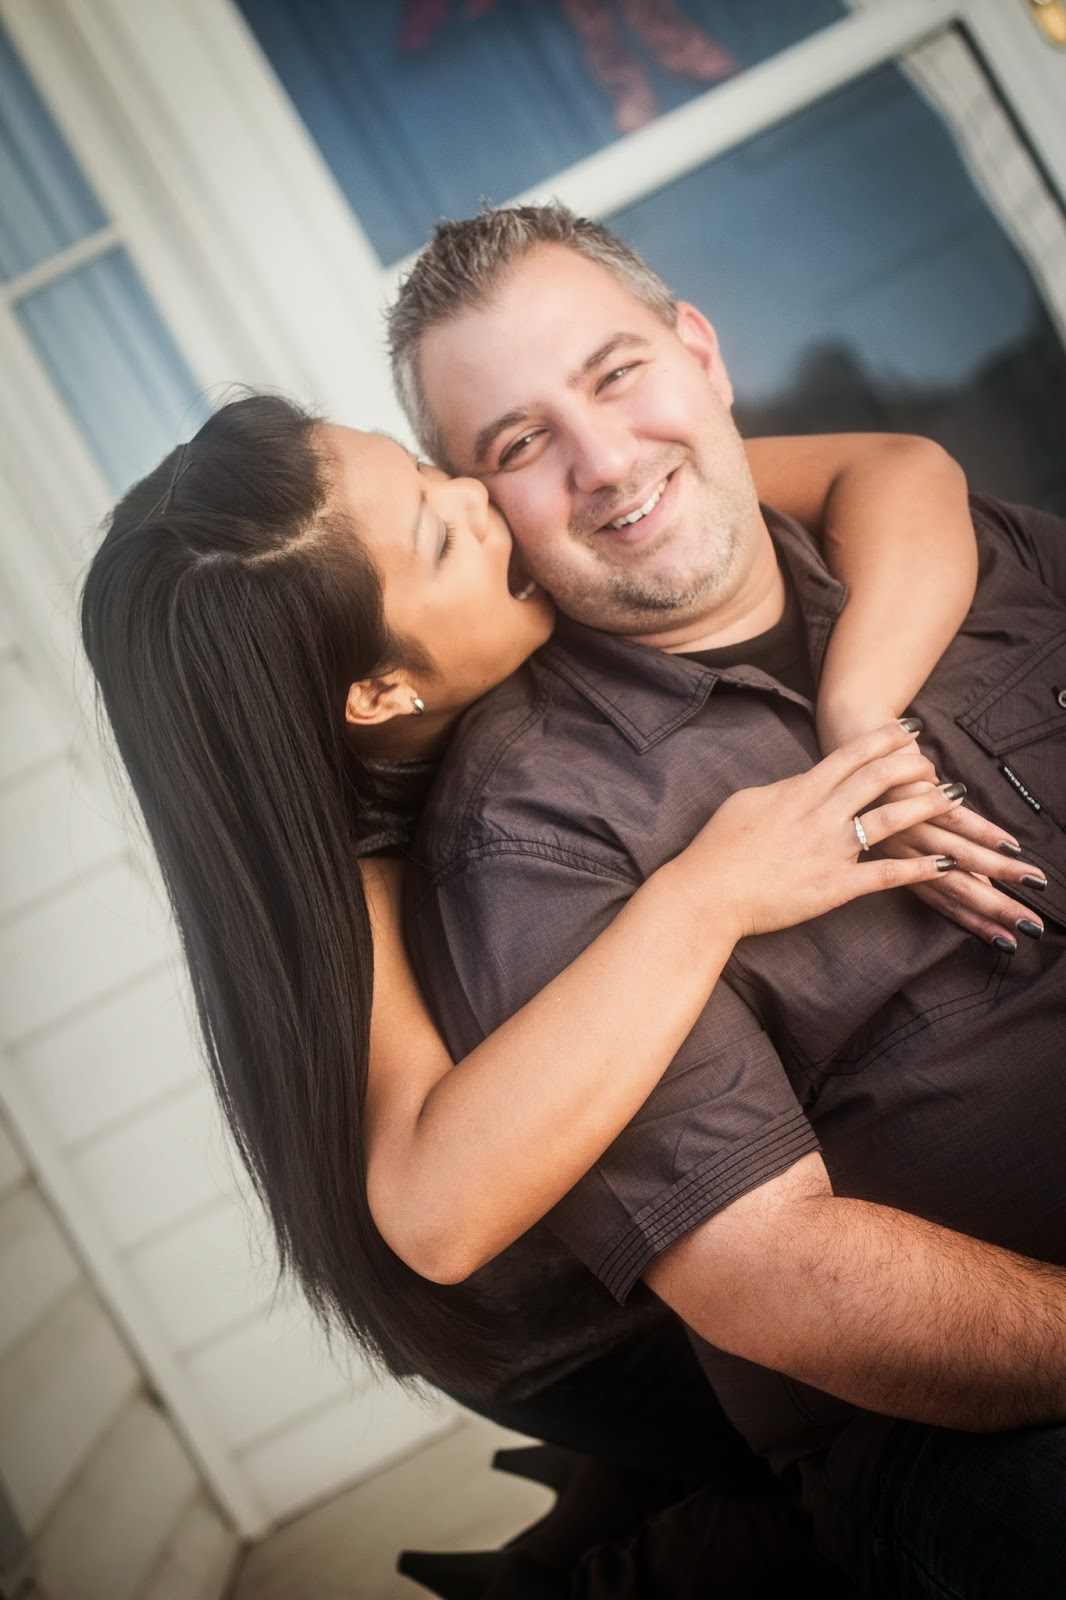 Justin Amy Our Family Engagement Session Greenville NC Photographer Bryant Tyson Photography 3